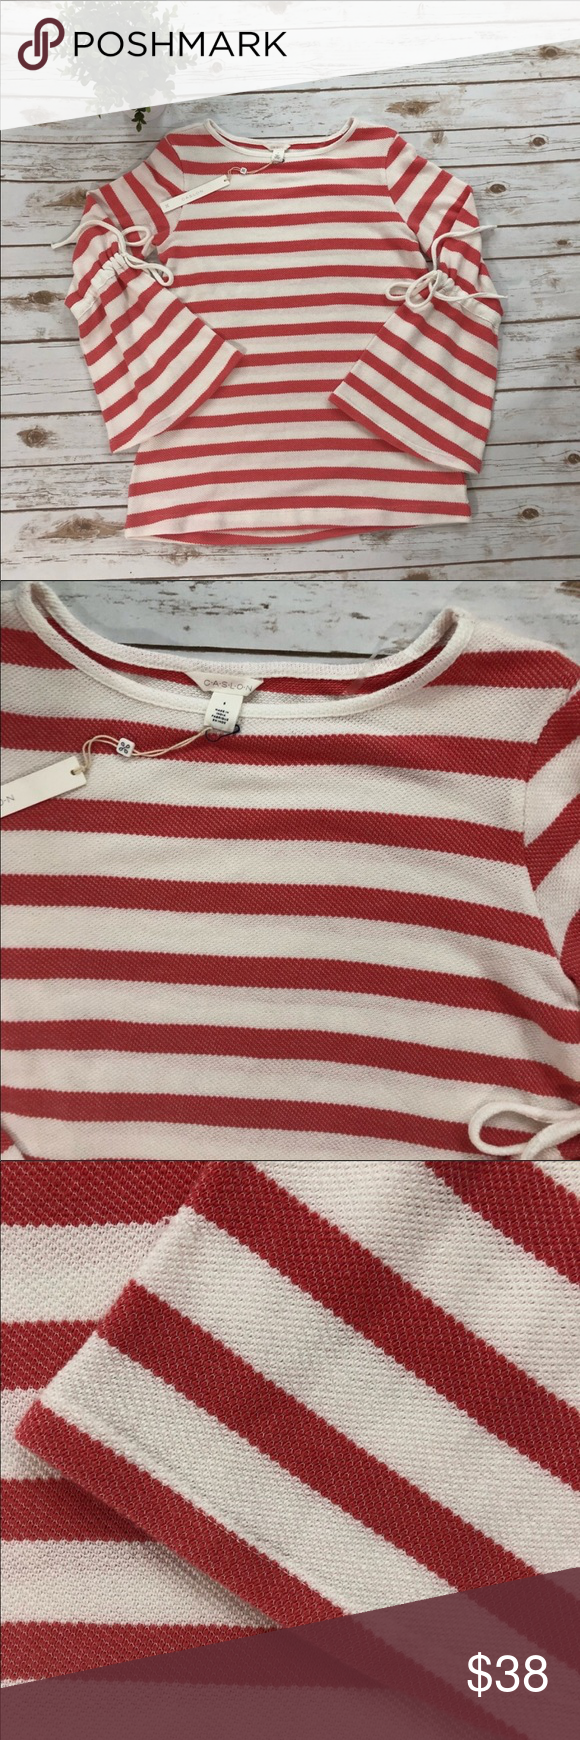 21adcc243 CASLON NWT coral   white striped sweater NWT